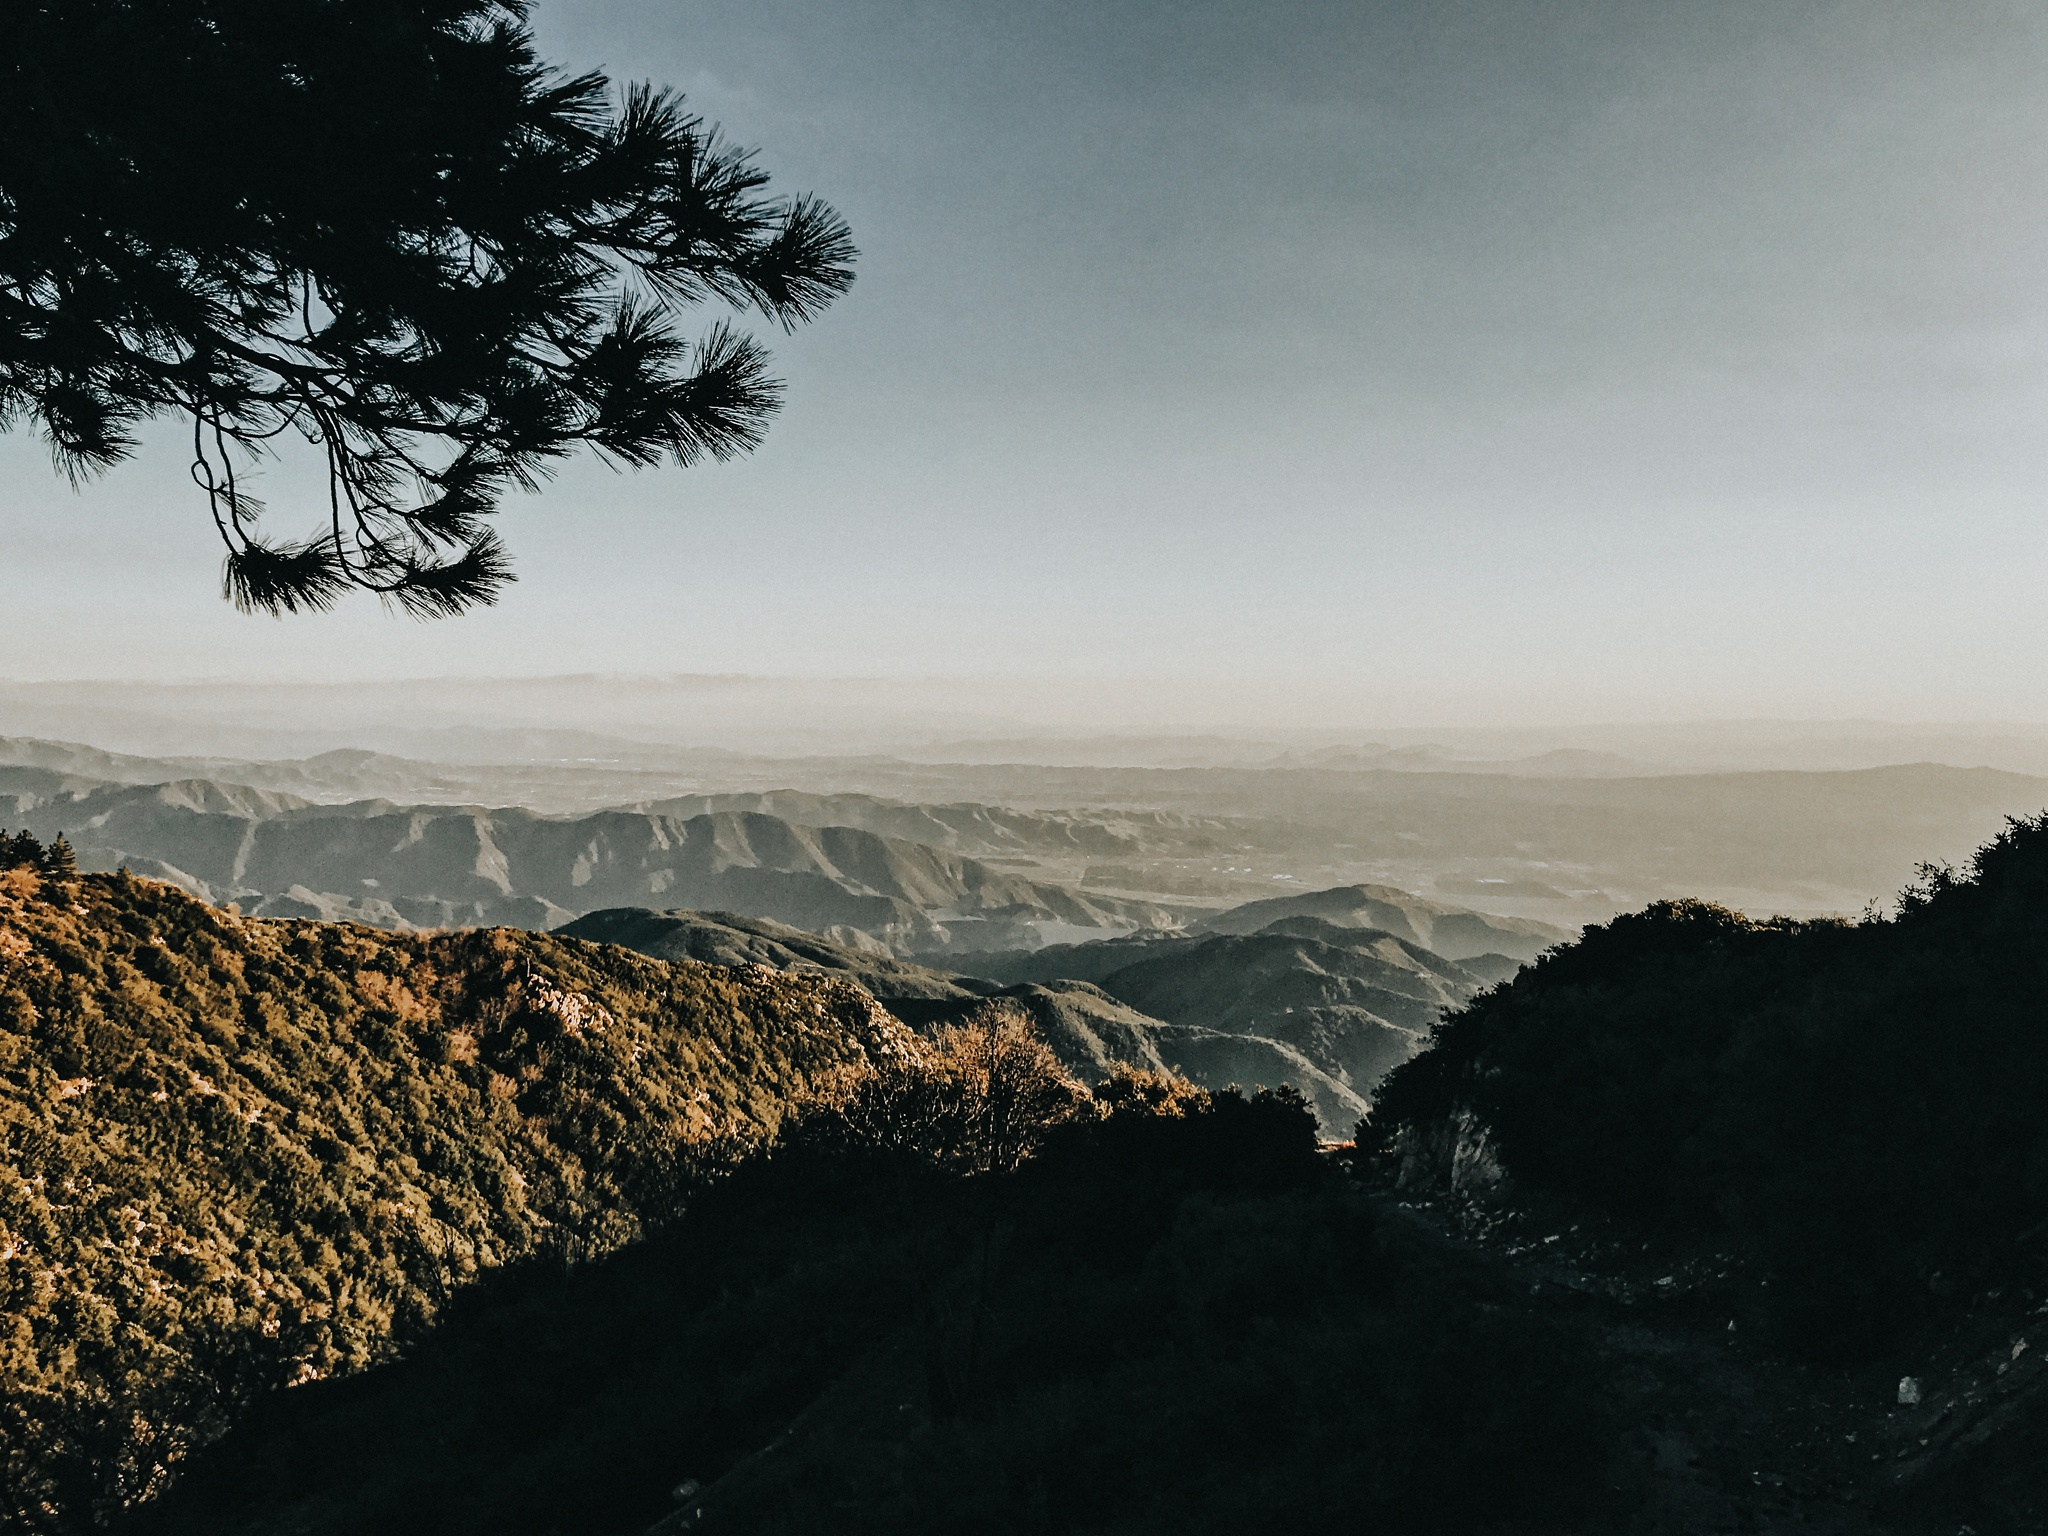 The incredible view from Running Springs, CA.